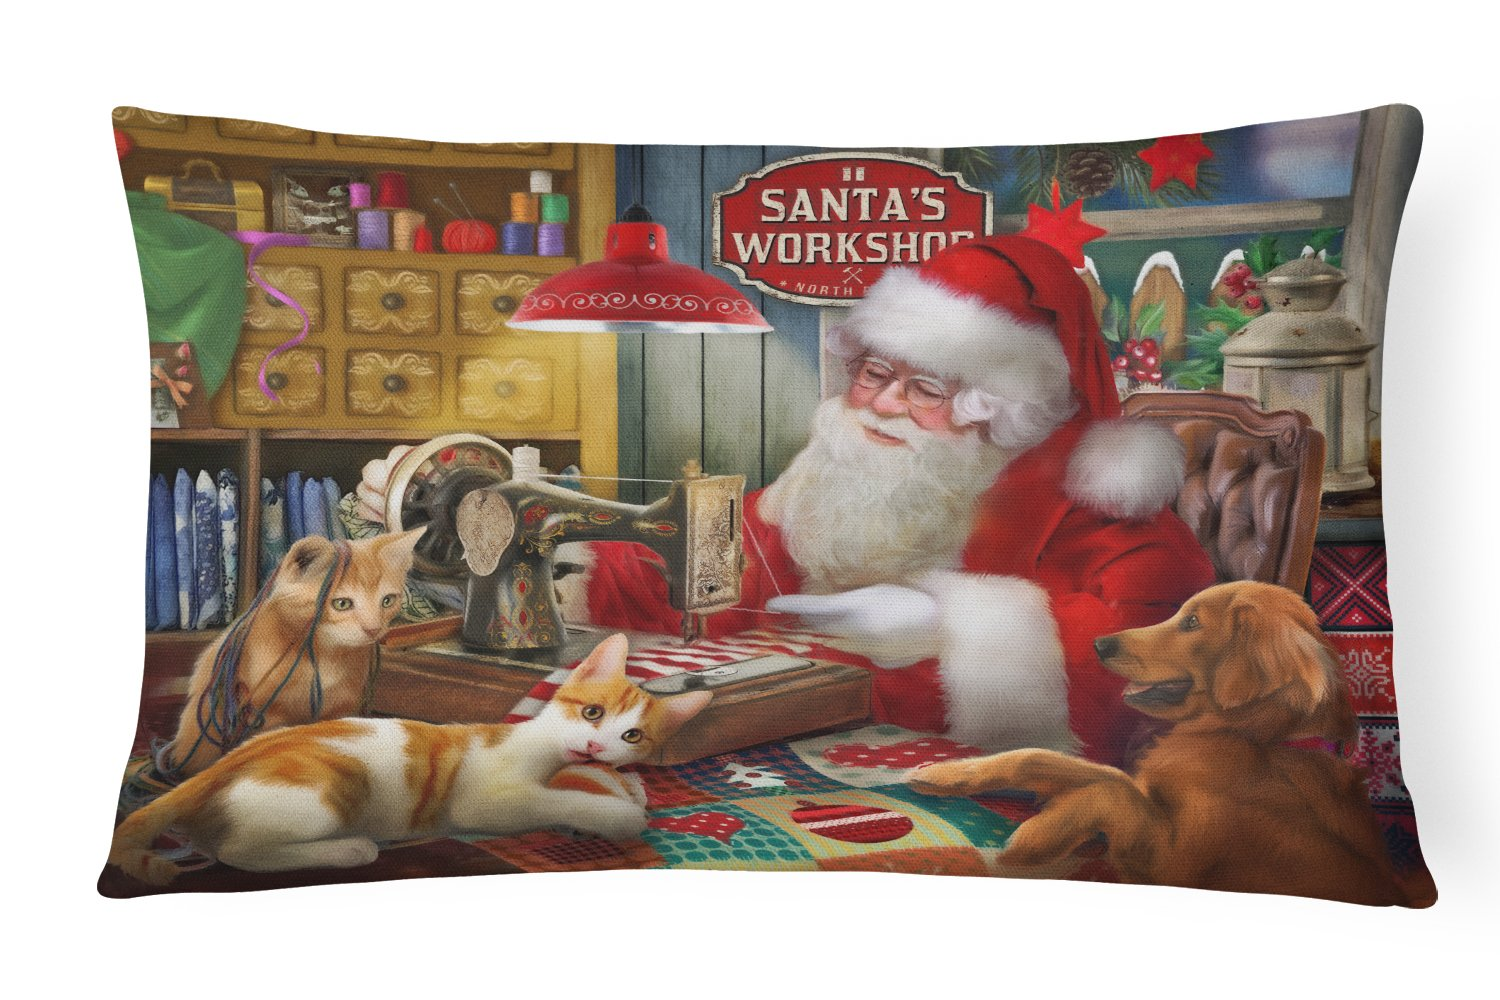 Santa's Workshop, Golden Retriever and Cats Canvas Fabric Decorative Pillow PTW2067PW1216 by Caroline's Treasures